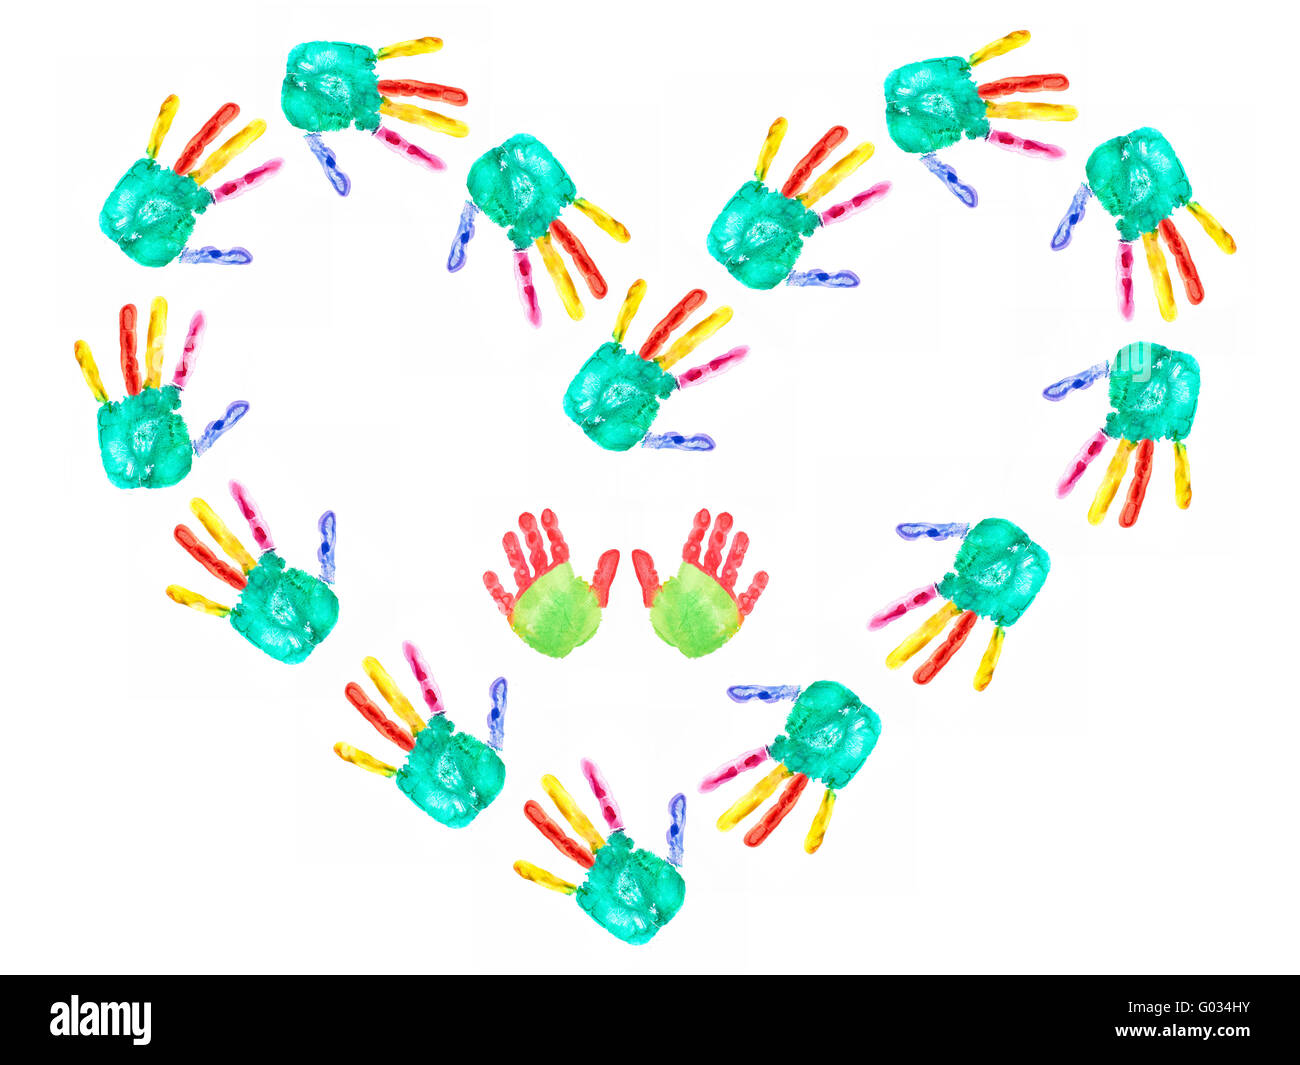 hands forming heart - Stock Image